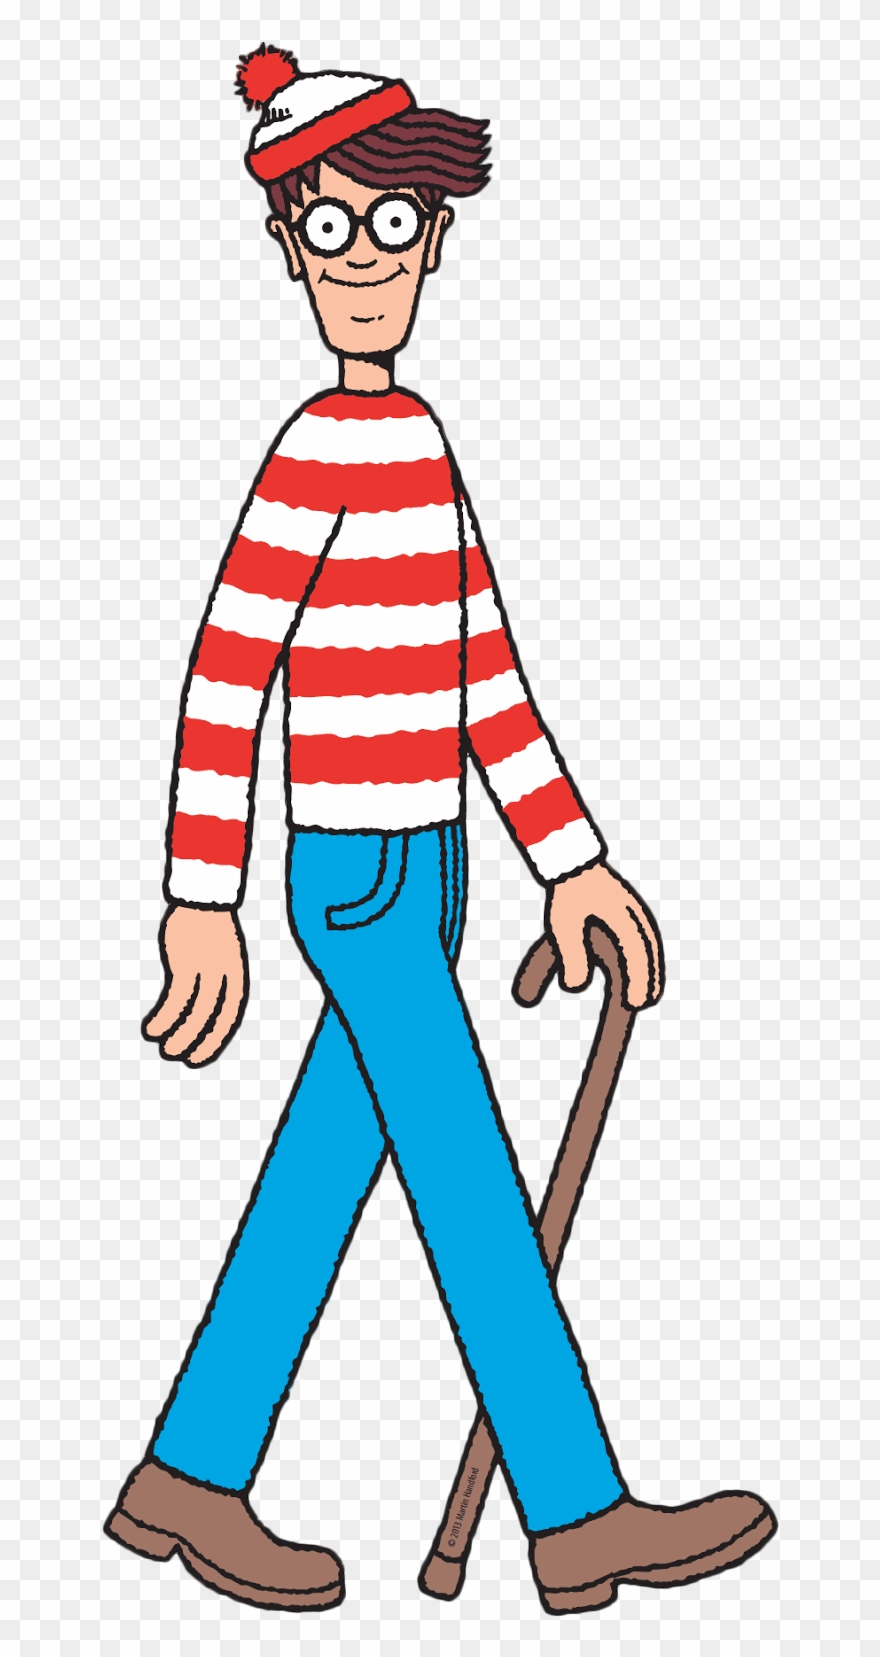 Where S Wally Png & Free Where S Wally.png Transparent Images #28879.